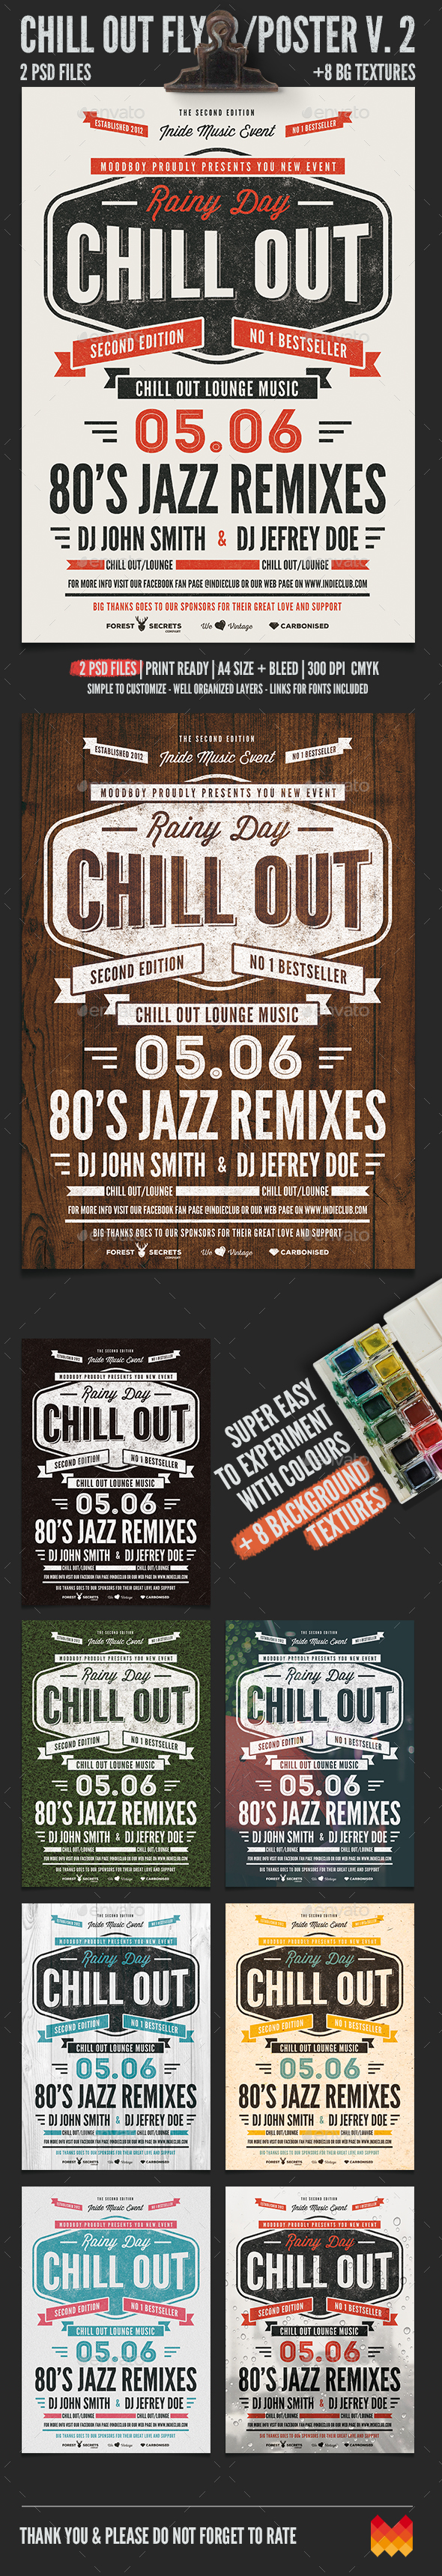 Chill Out Flyer/Poster V. 02 - Flyers Print Templates